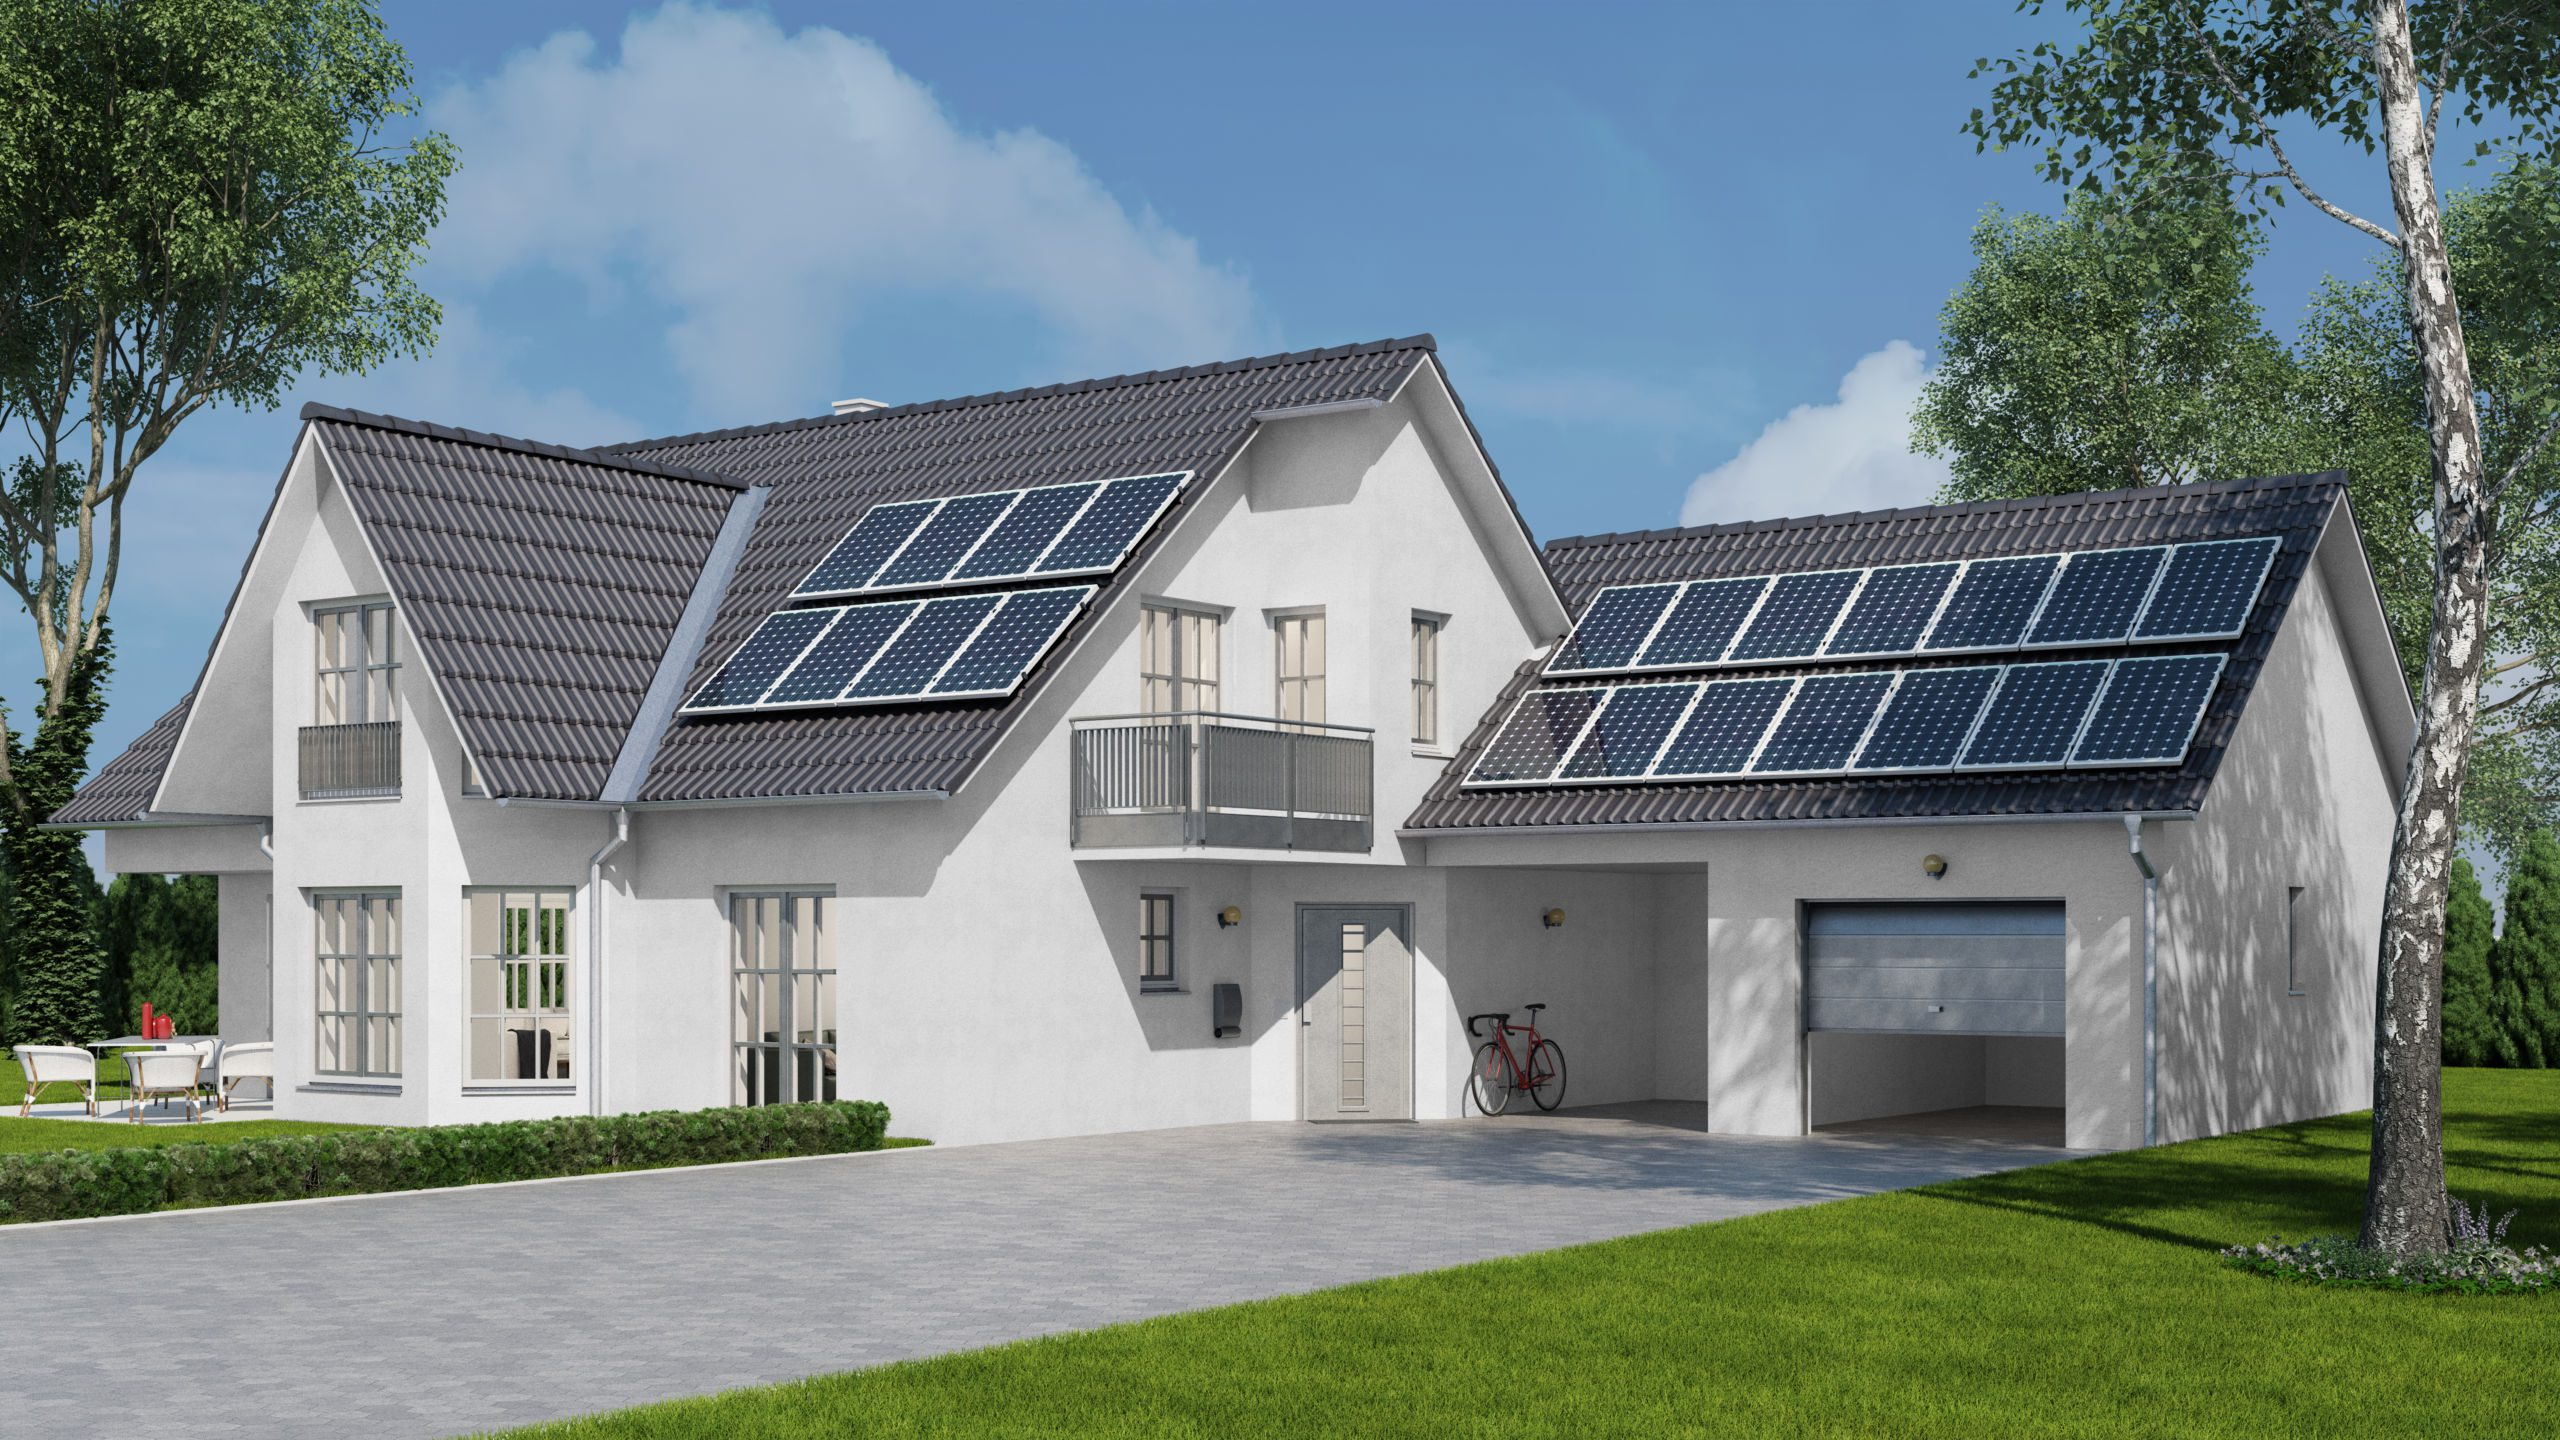 Solar Panel Roofing On Residential Home - Eco Friendly Roofing